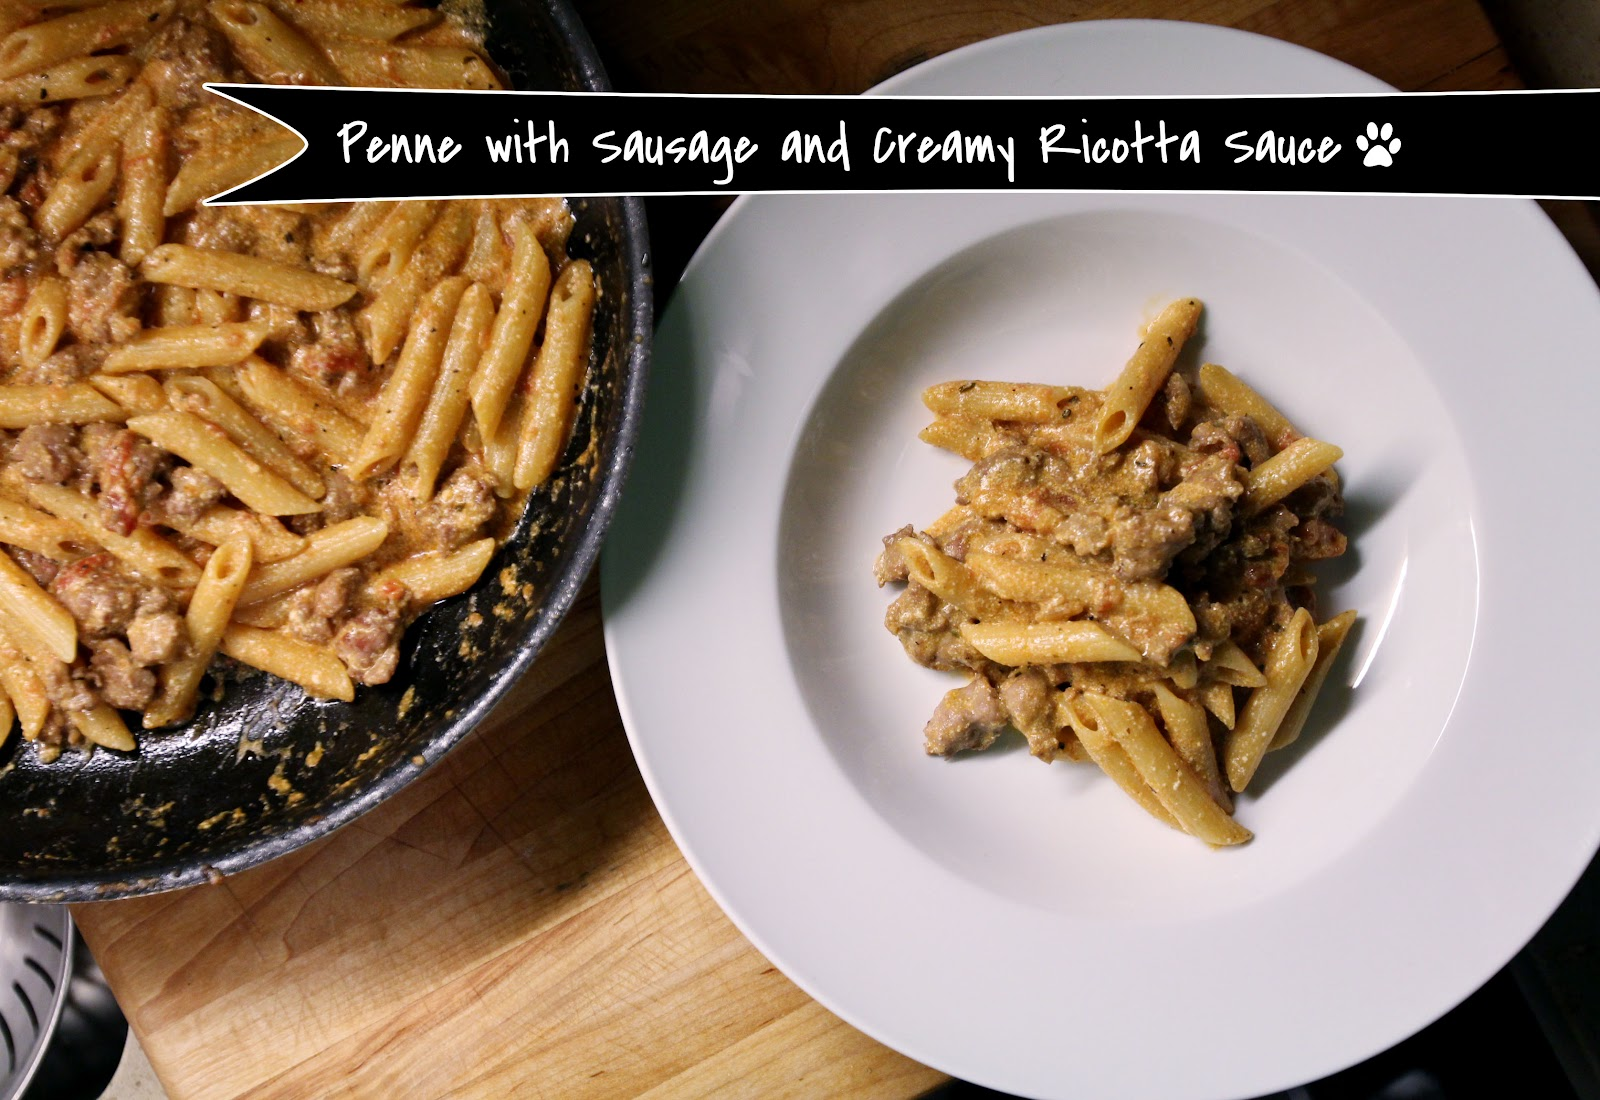 Ooey Gooey Goodness: Penne with Sausage and Creamy Ricotta Sauce